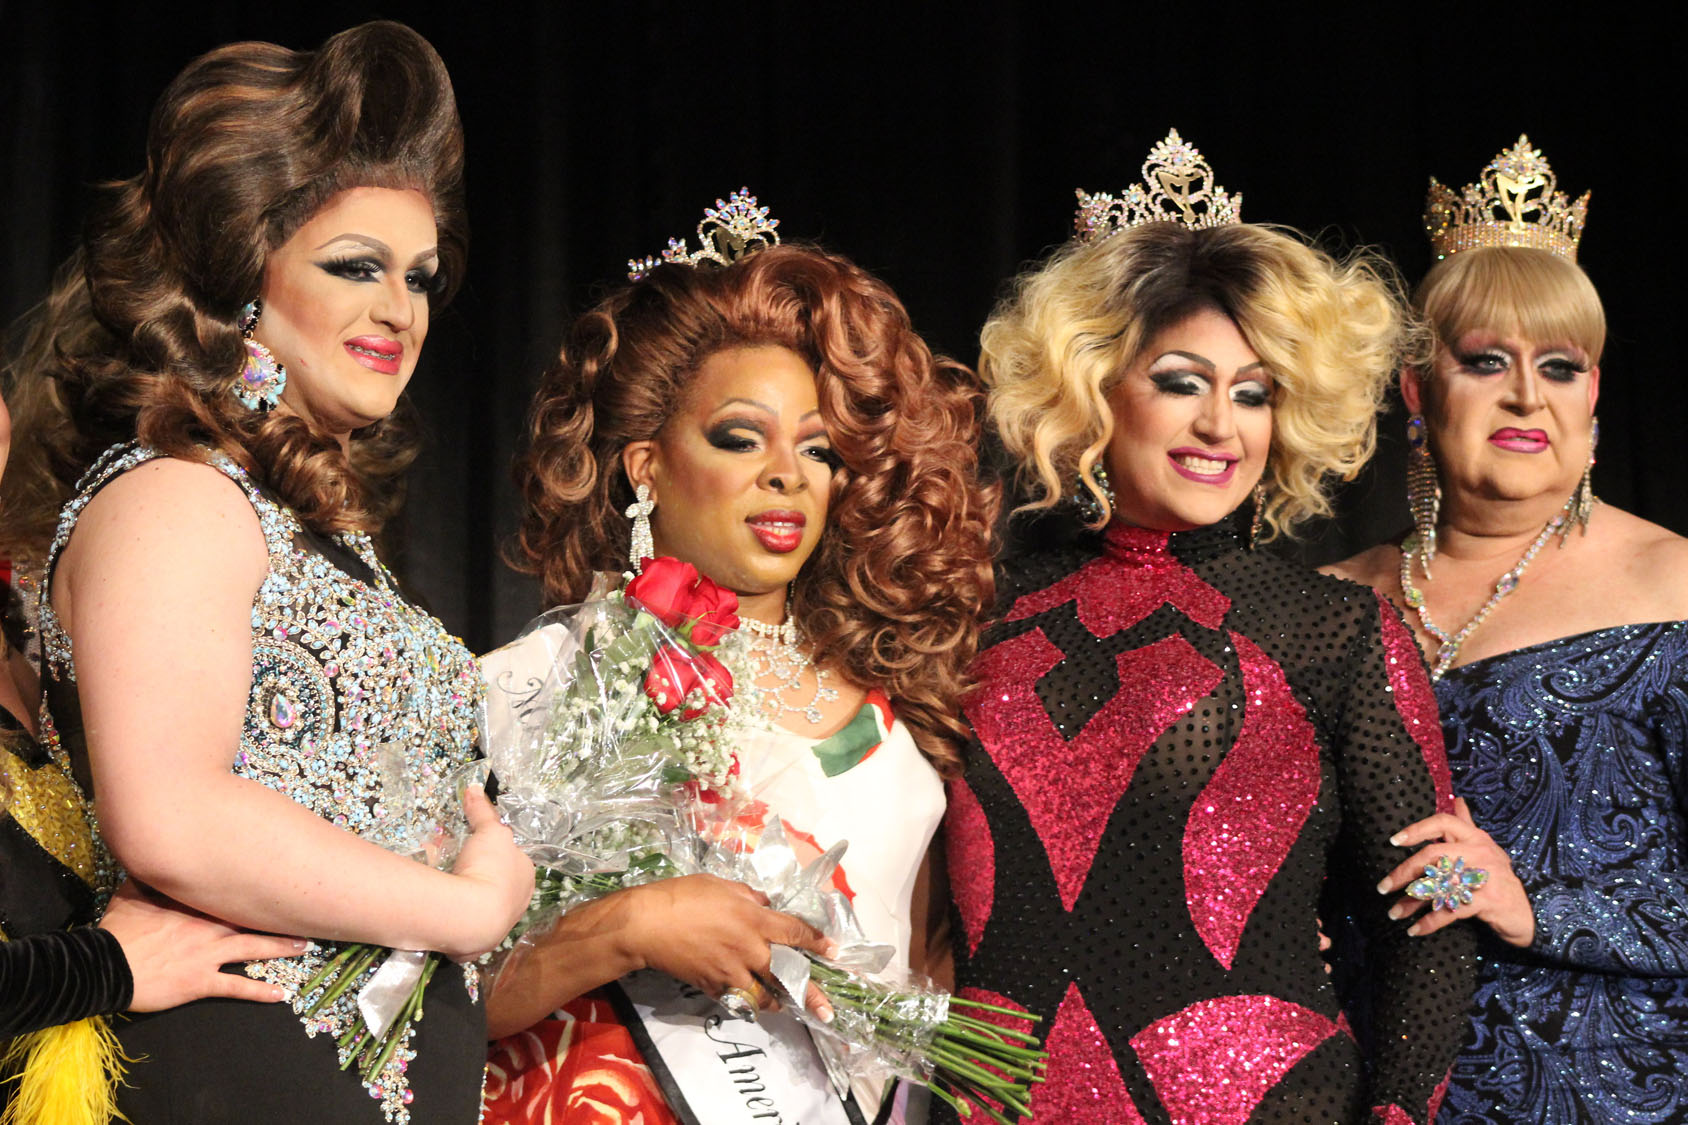 Miss Gay Maryland America 2017 in Baltimore